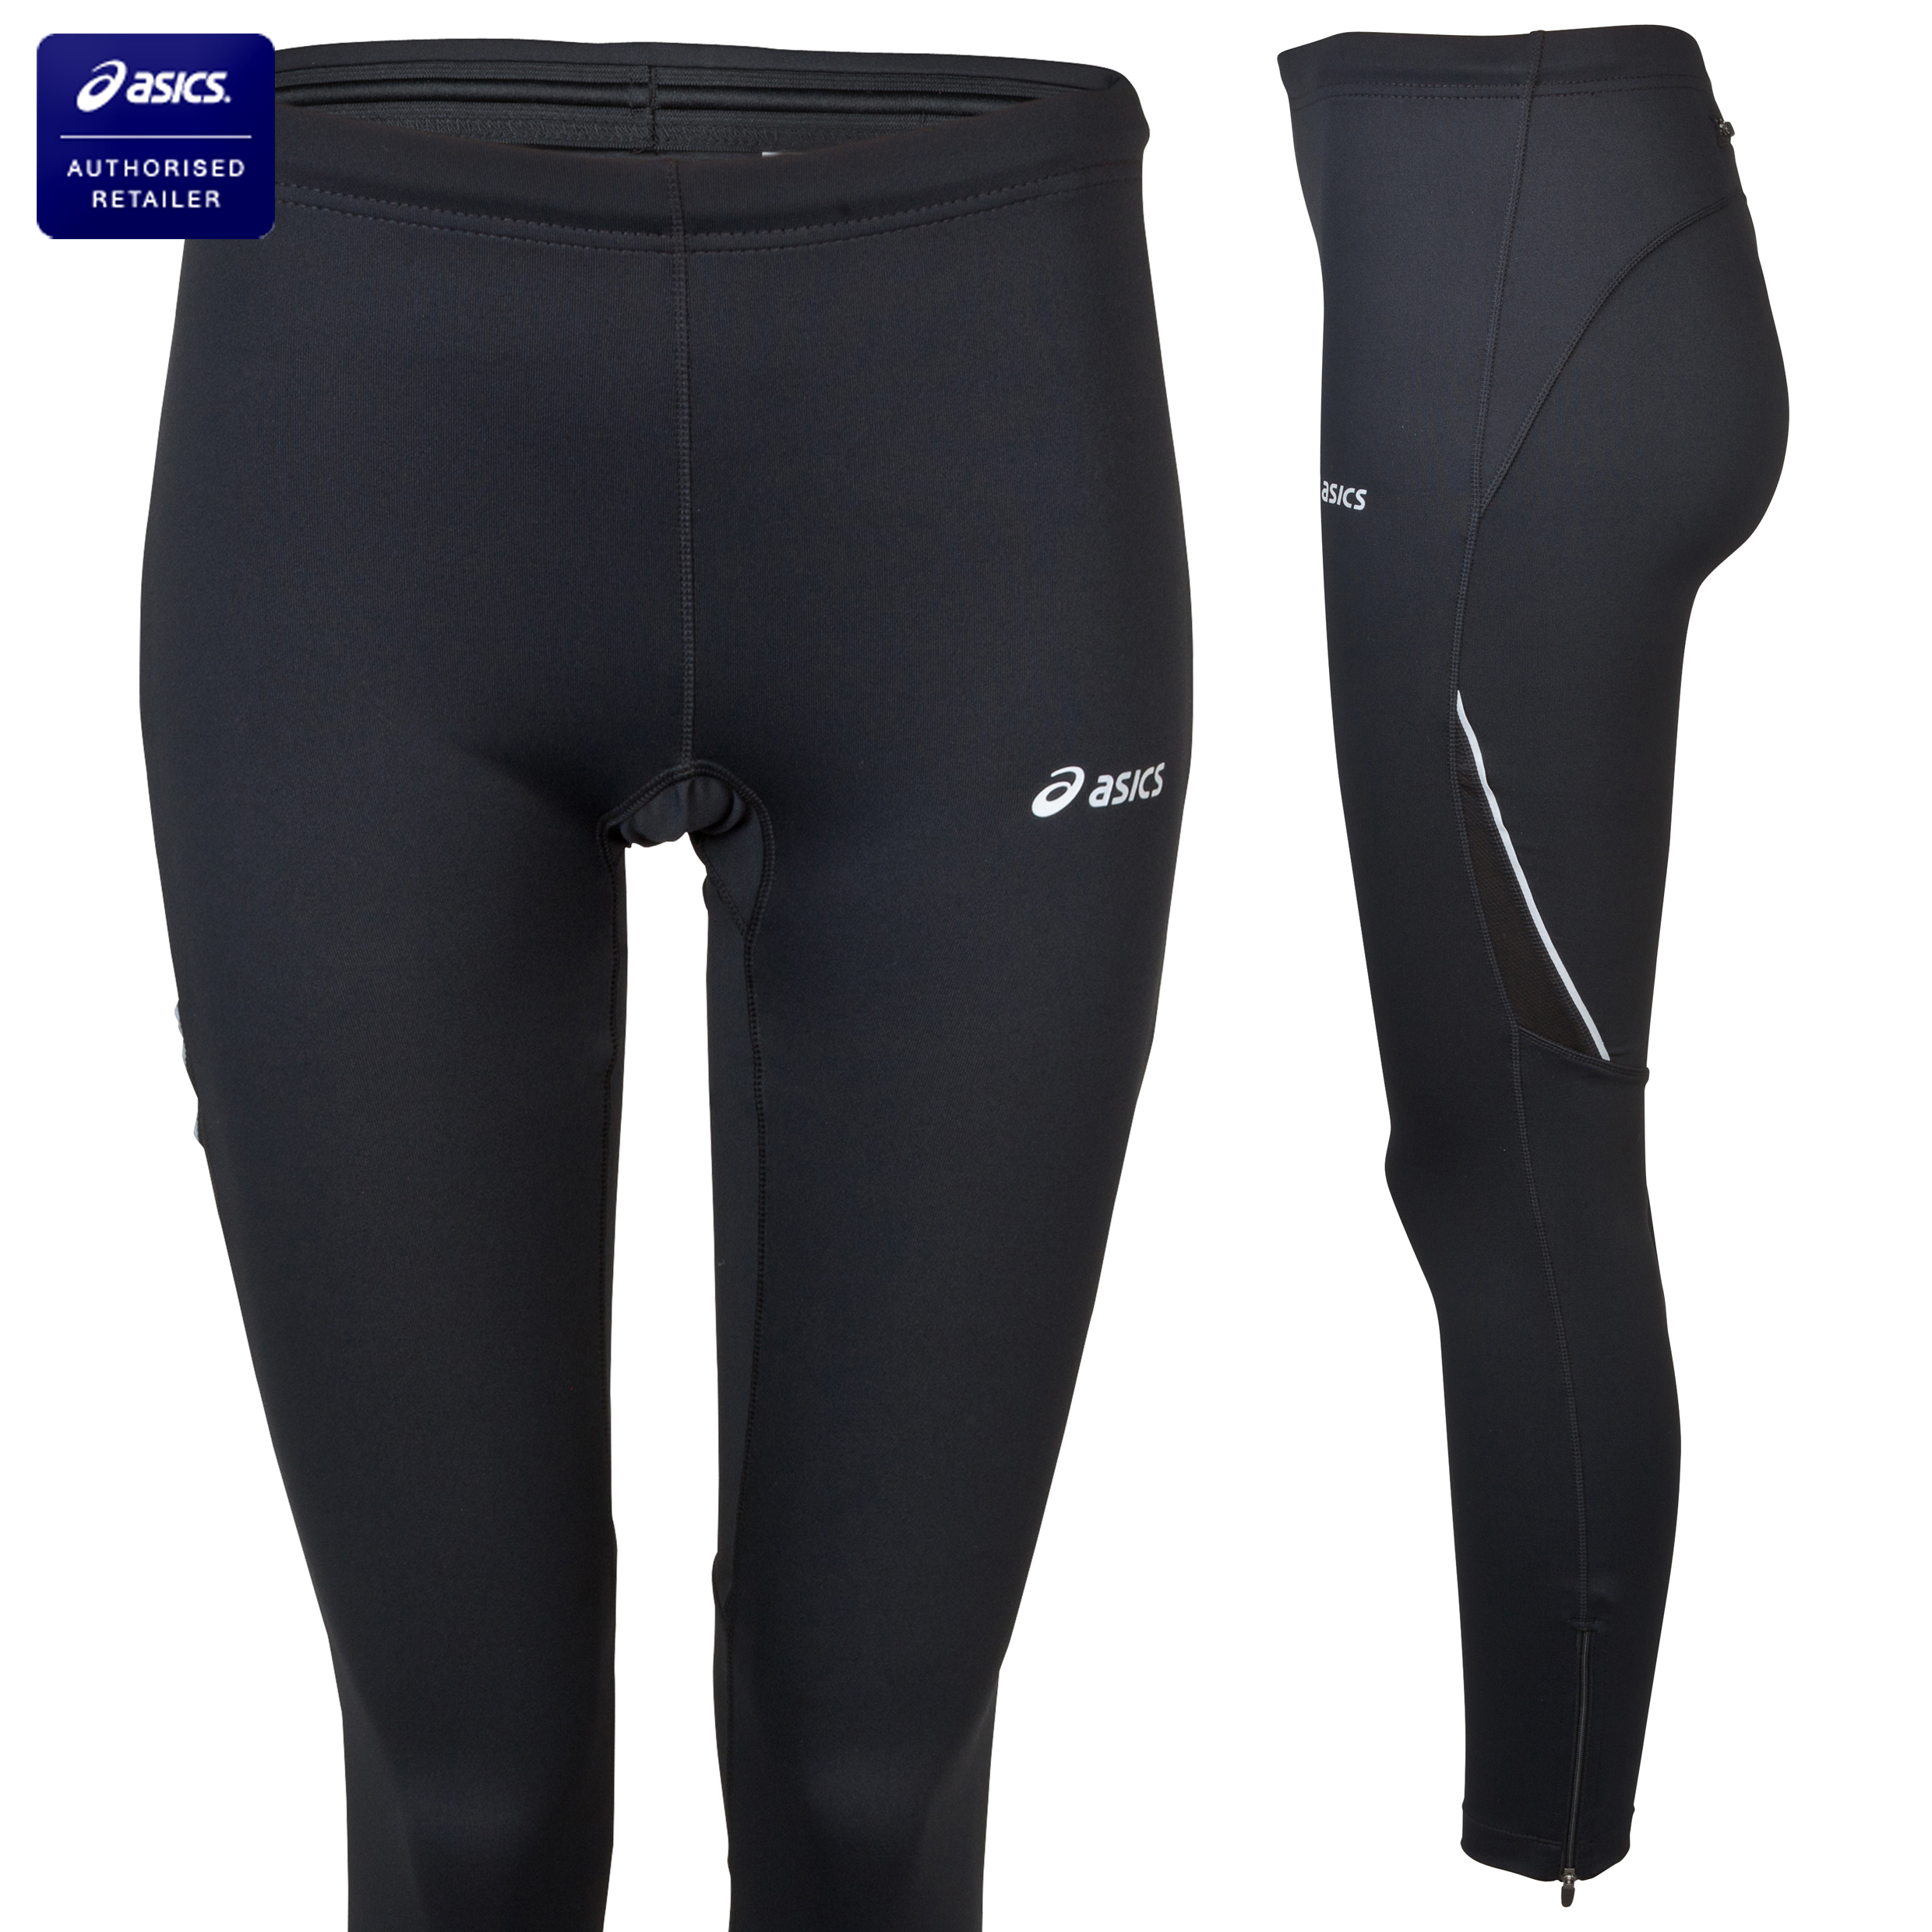 Asics Vesta Tight - Black - Womens